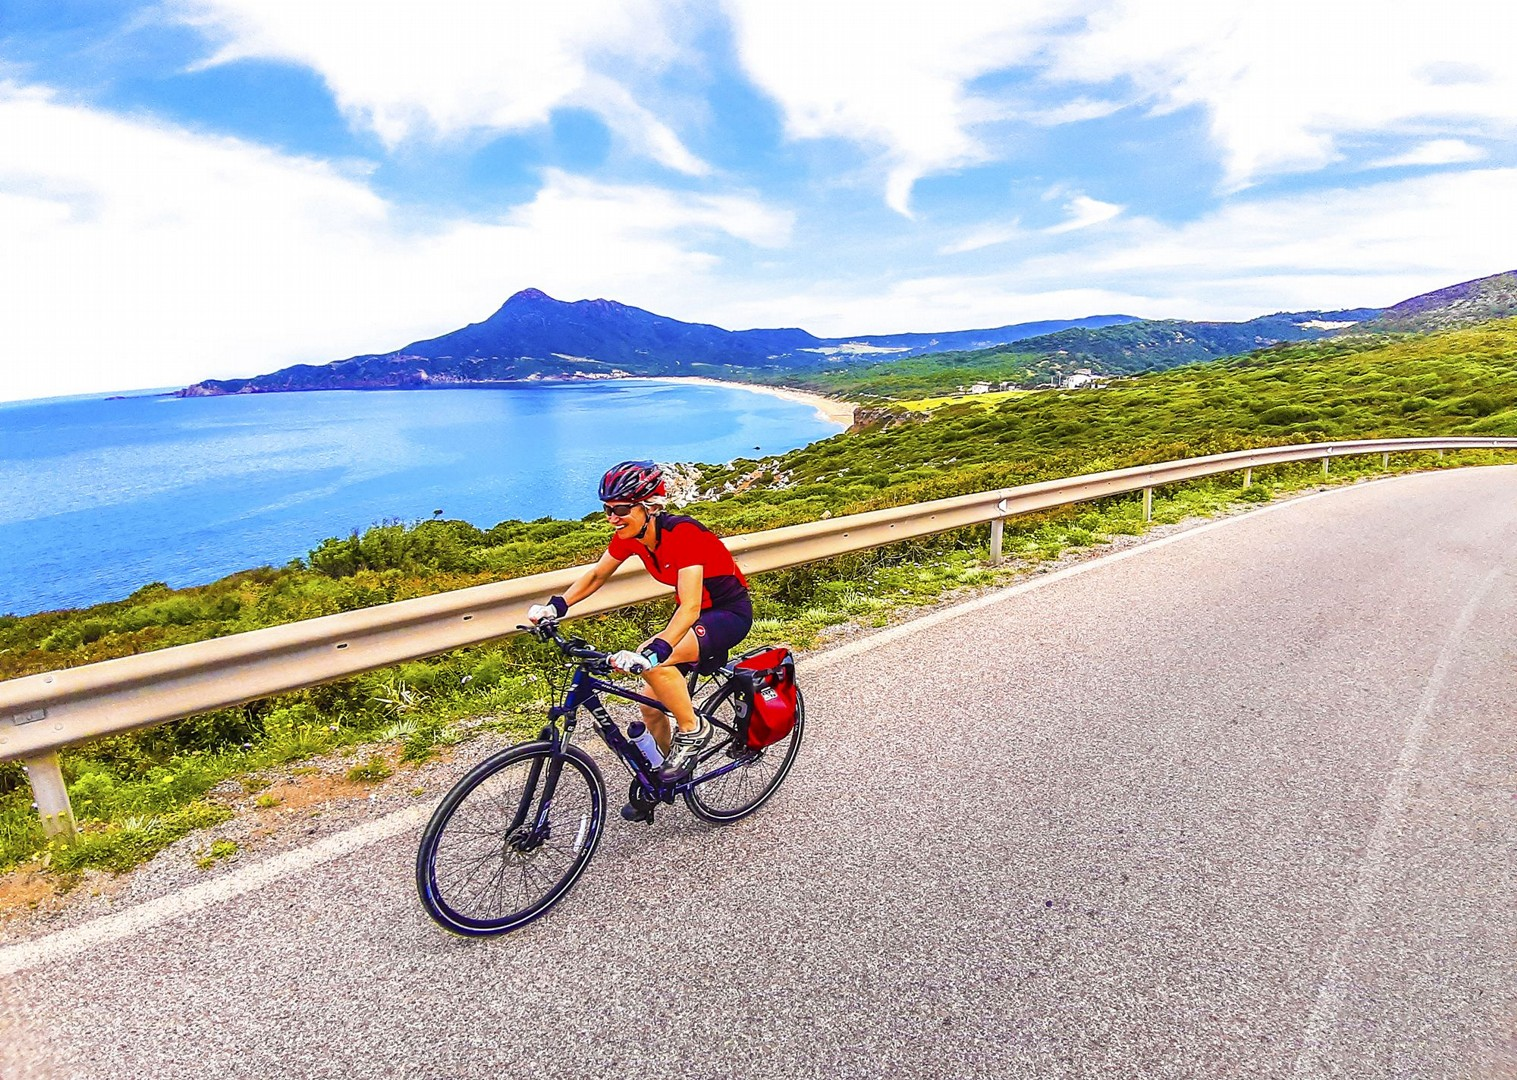 self-guided-leisure-cycling-sardinia-holiday-island-flavours.jpg - Italy - Sardinia - Island Flavours - Self-Guided Leisure Cycling Holiday - Italia Leisure and Family Cycling